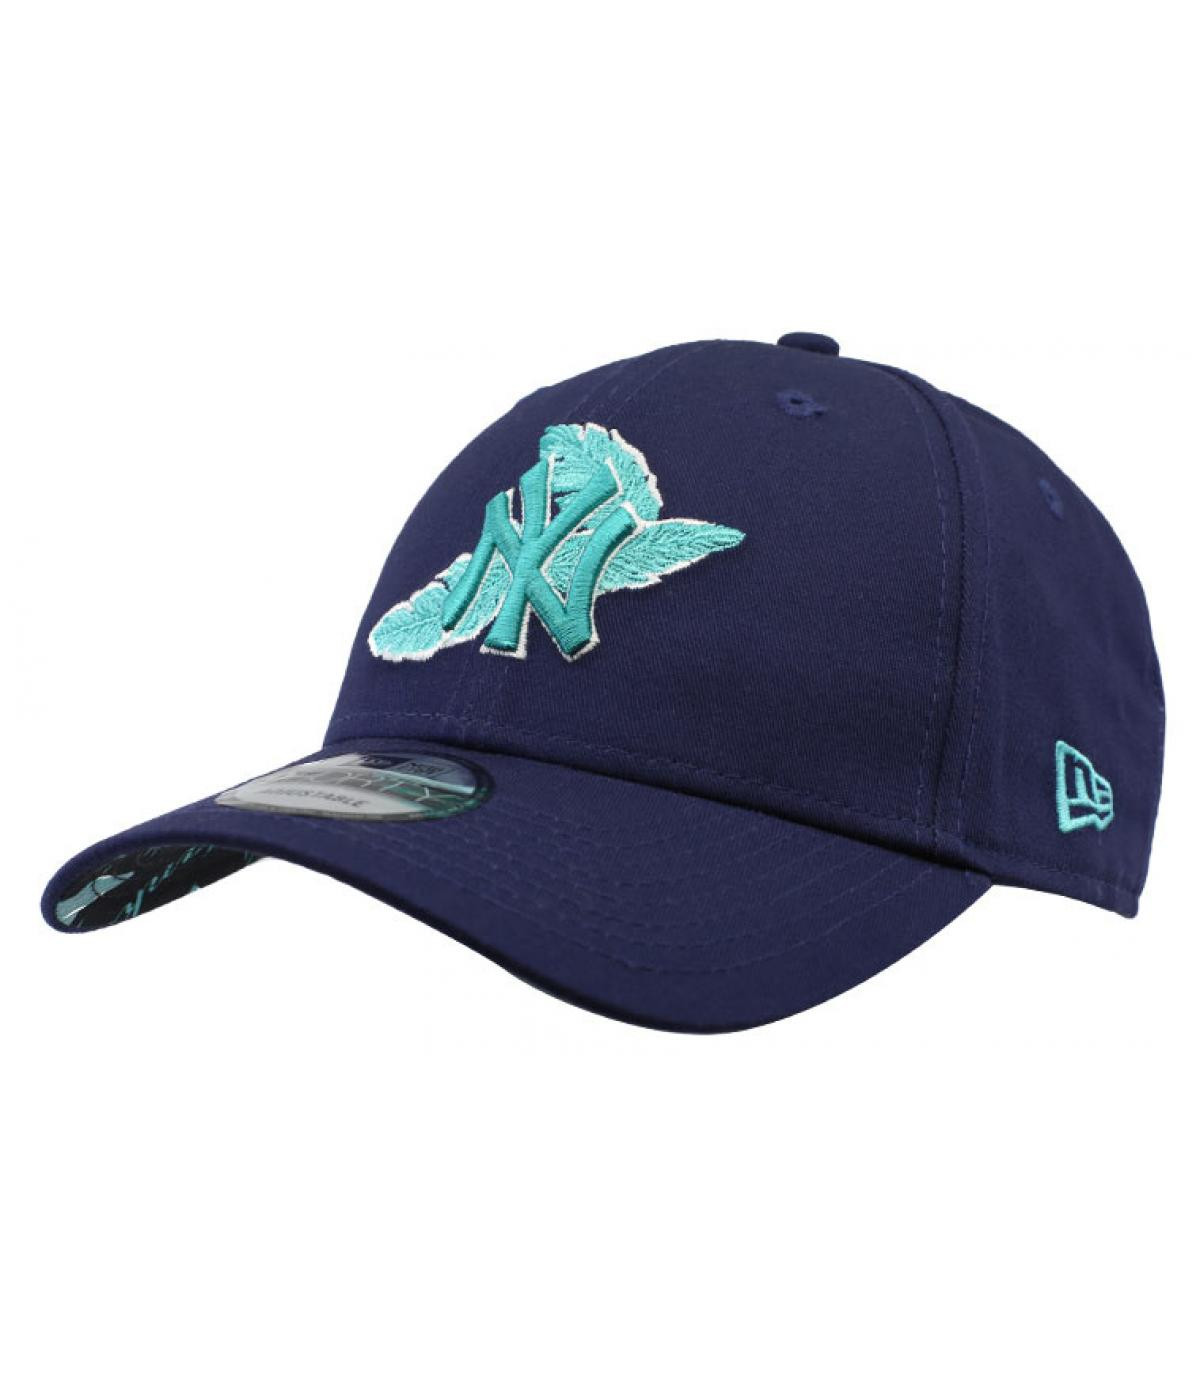 Details MLB Light Weight NY 9Forty nay teal - afbeeling 2